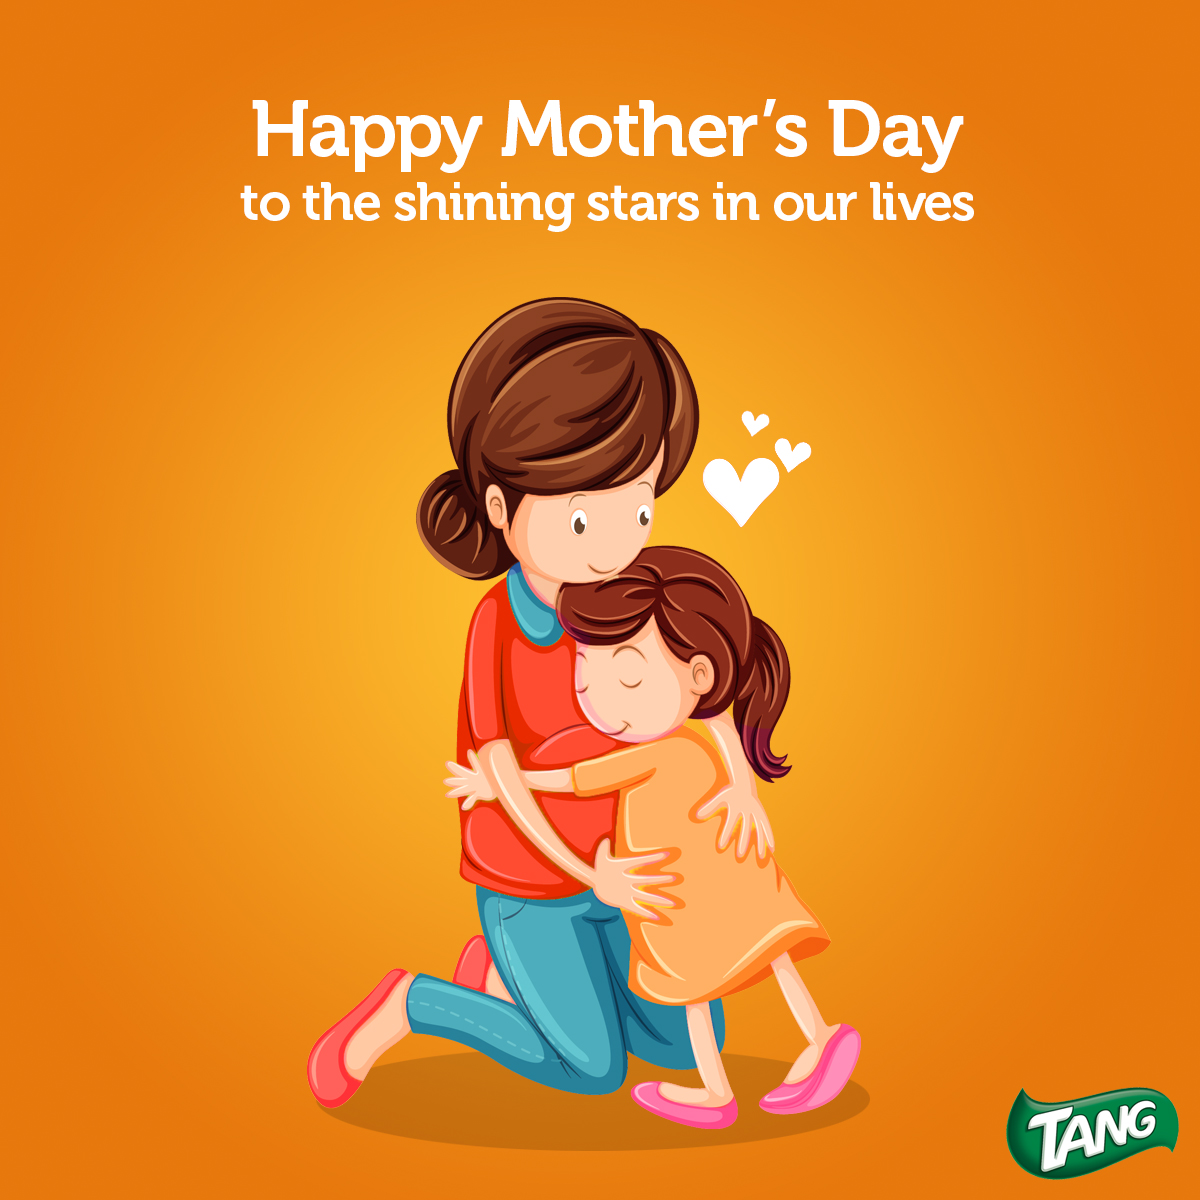 Tang Own Mother's Day With a Thoughtful Surprise!